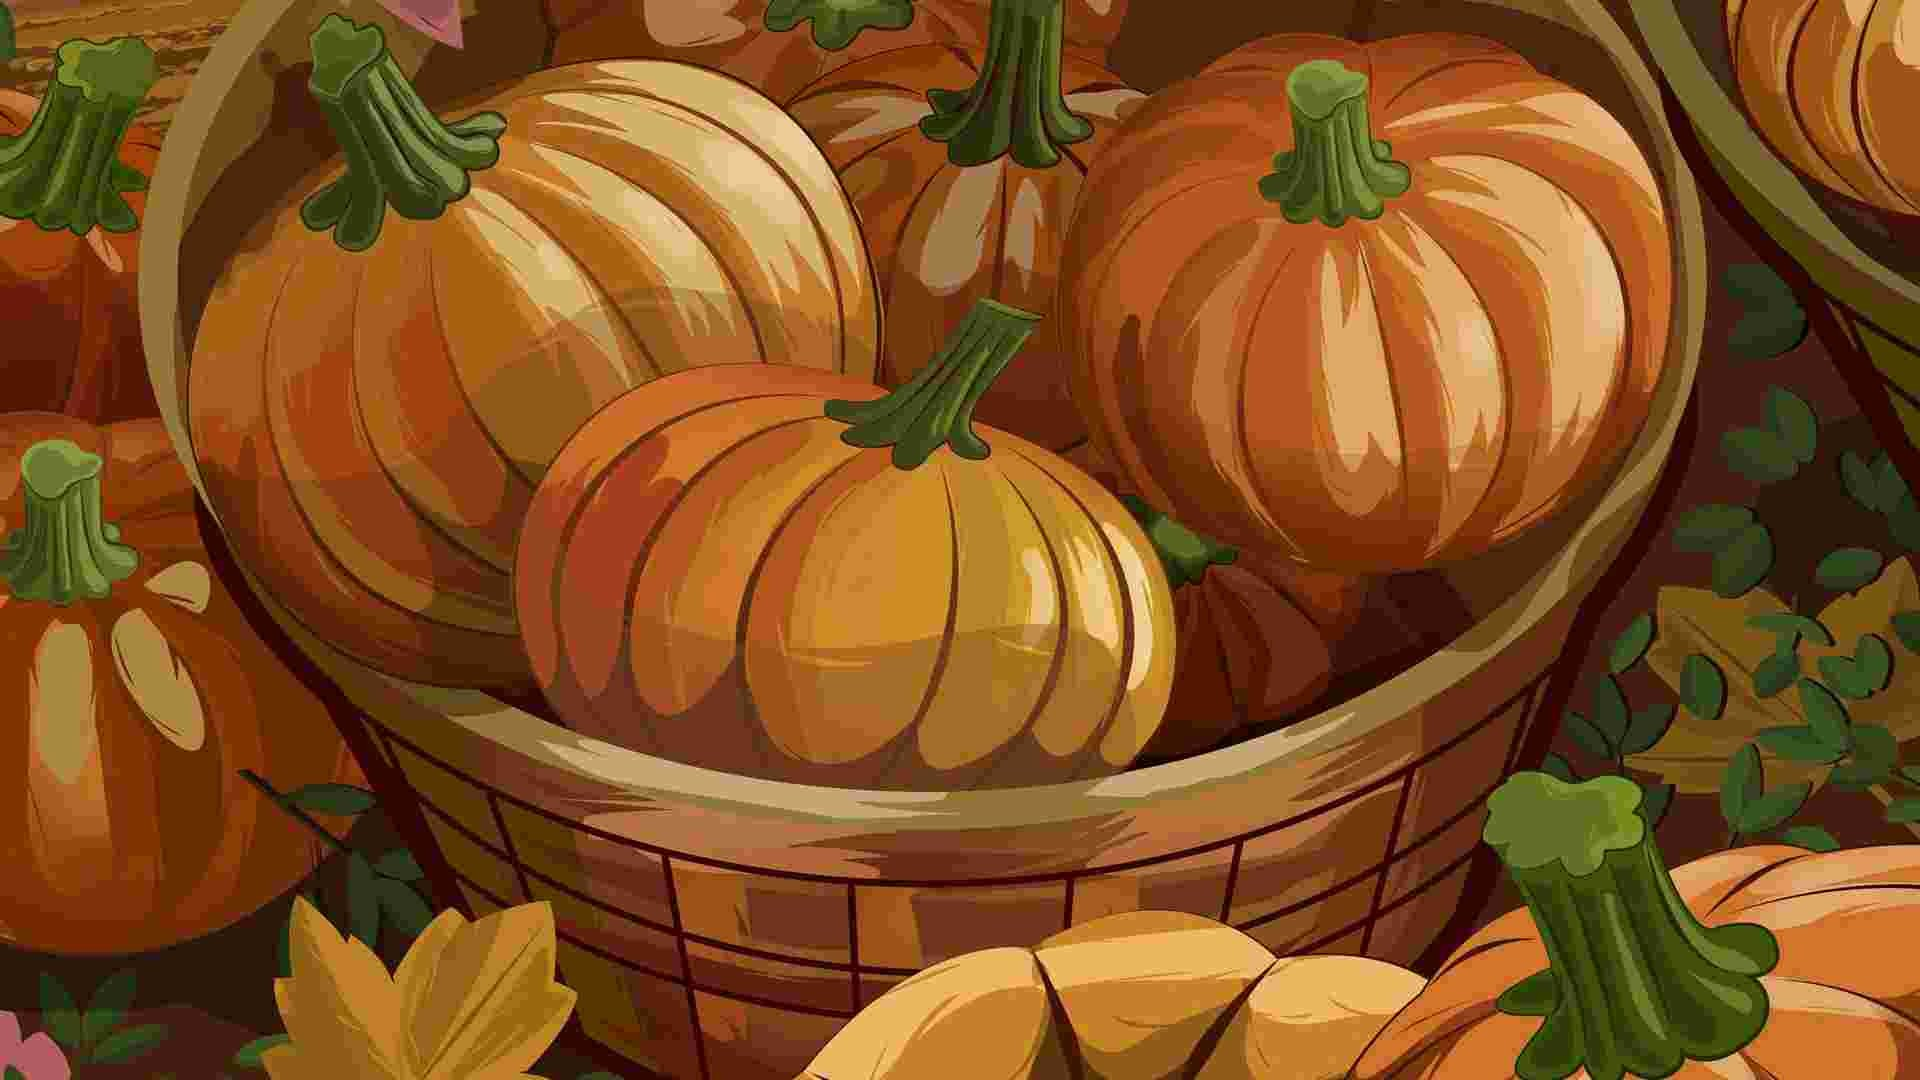 autumn pumpkin wallpaper 47 images